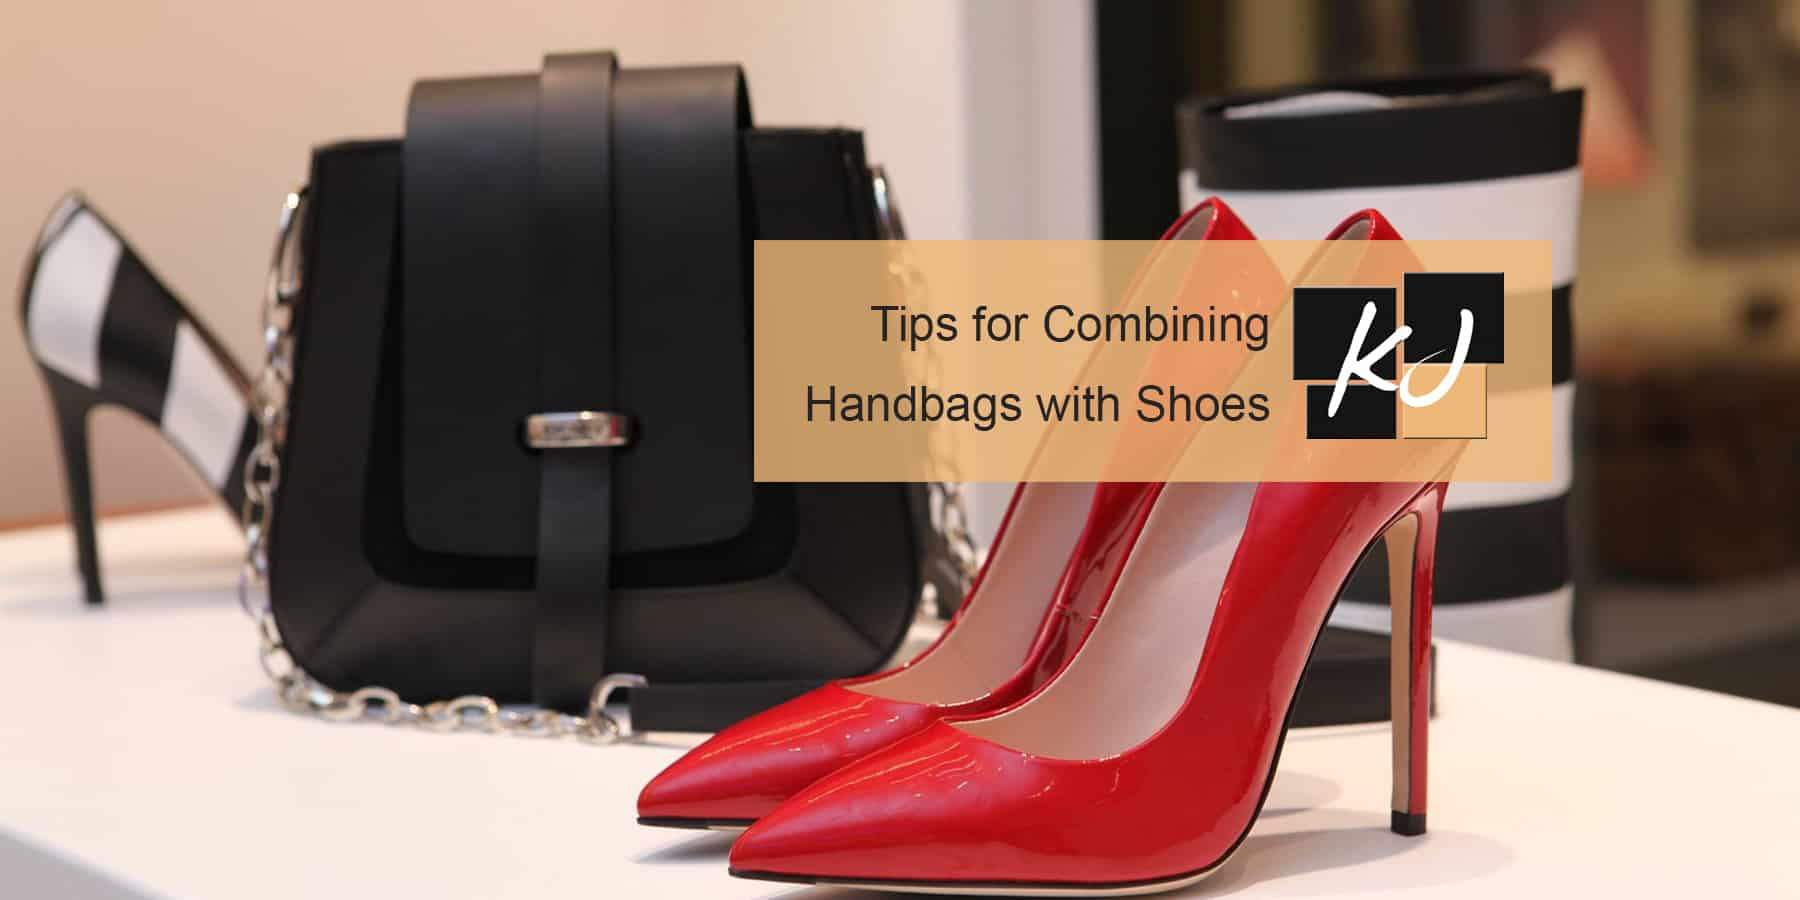 Tips for Combining Handbags with Shoes